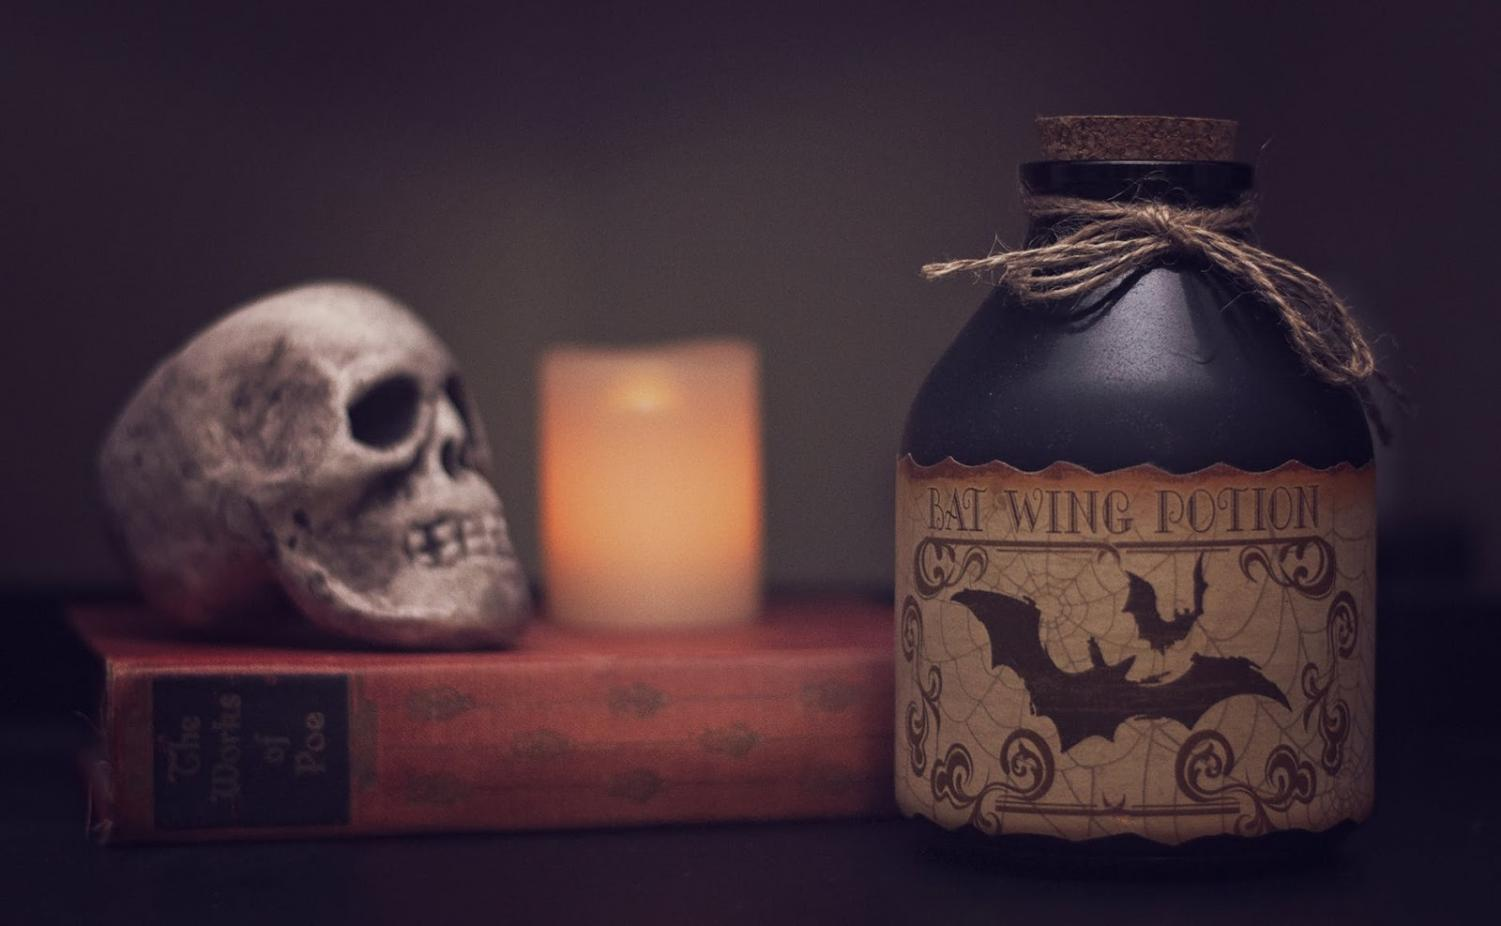 Common elements of horror films include skulls, potions or poisons, bats and night. (Photo courtesy of Pexels)